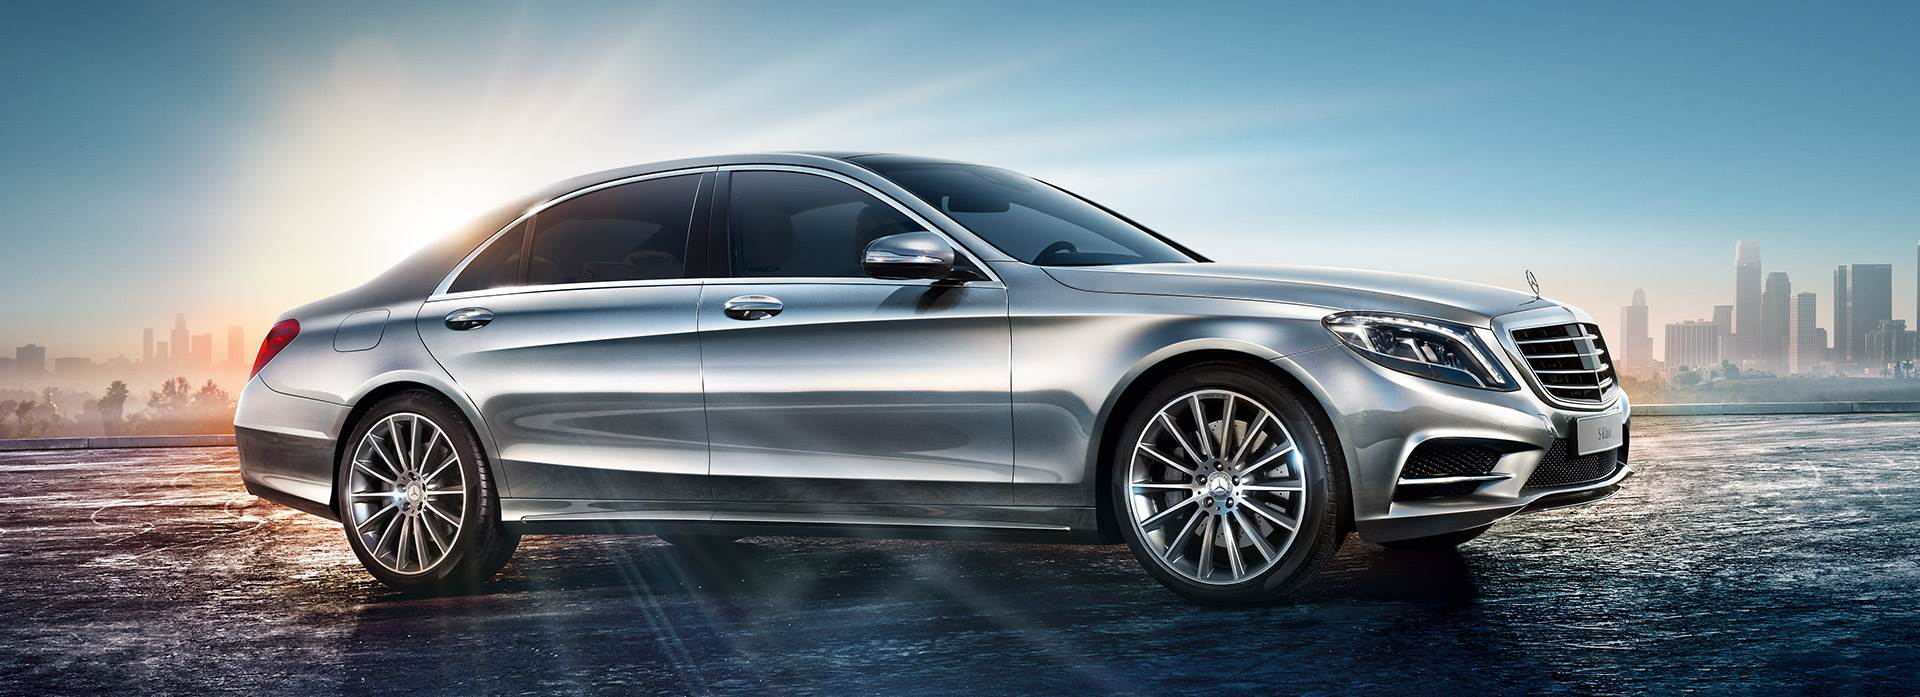 new mercedes s class belfast portadown agnew group